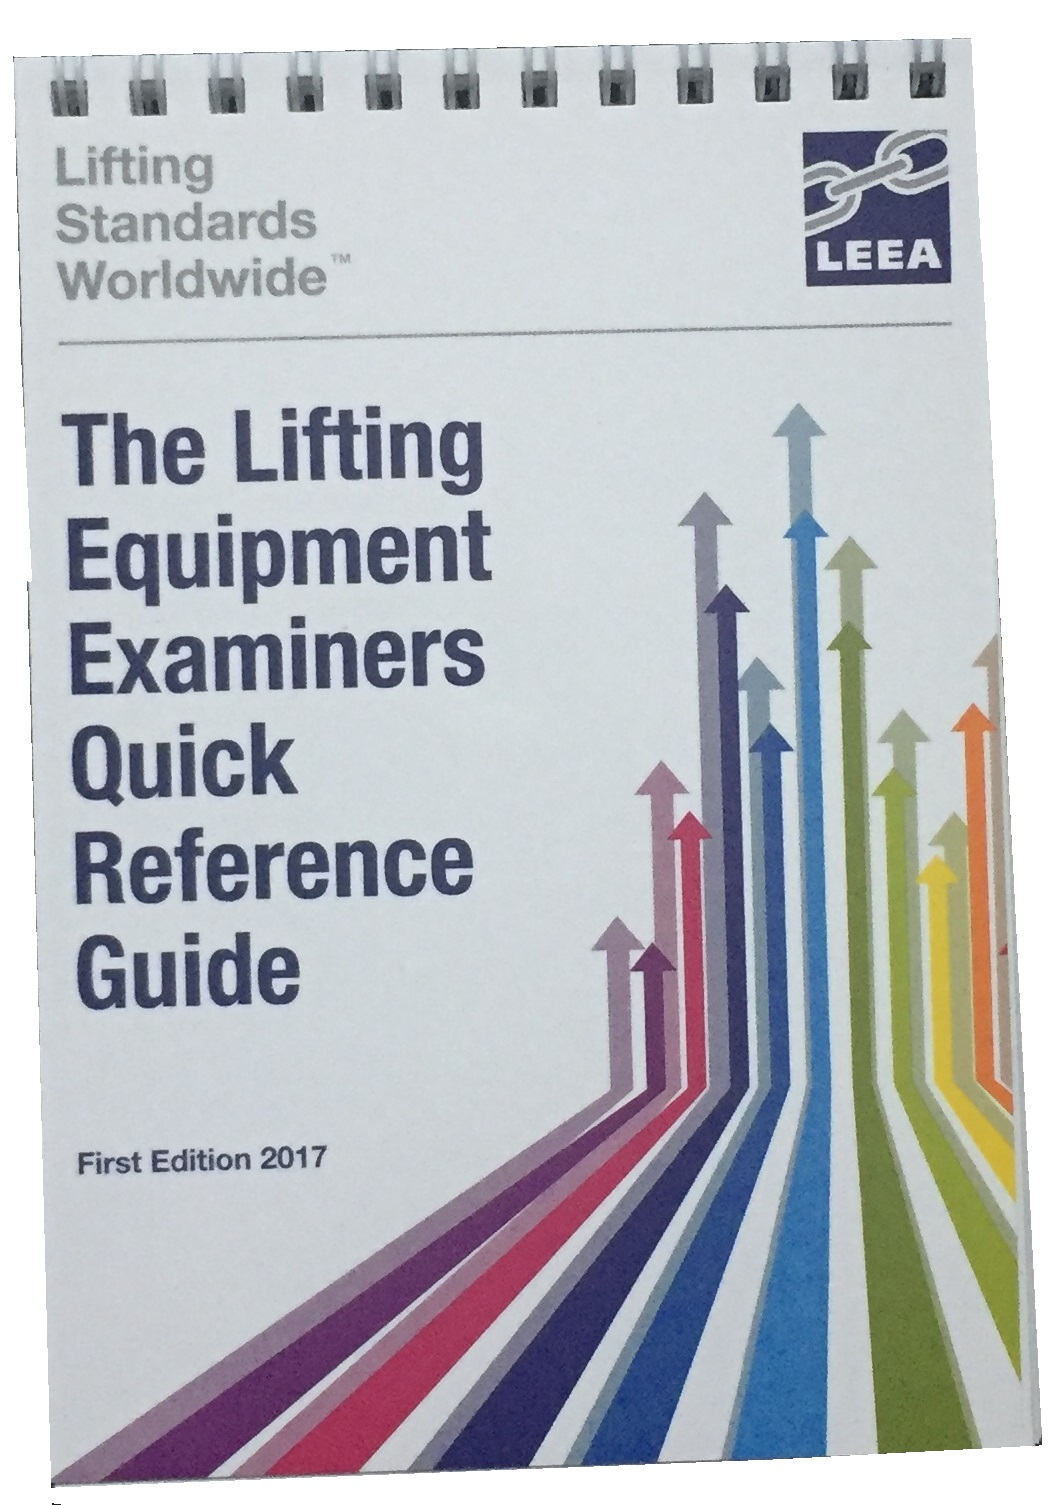 The Lifting Equipment Examiners Quick Reference Guide